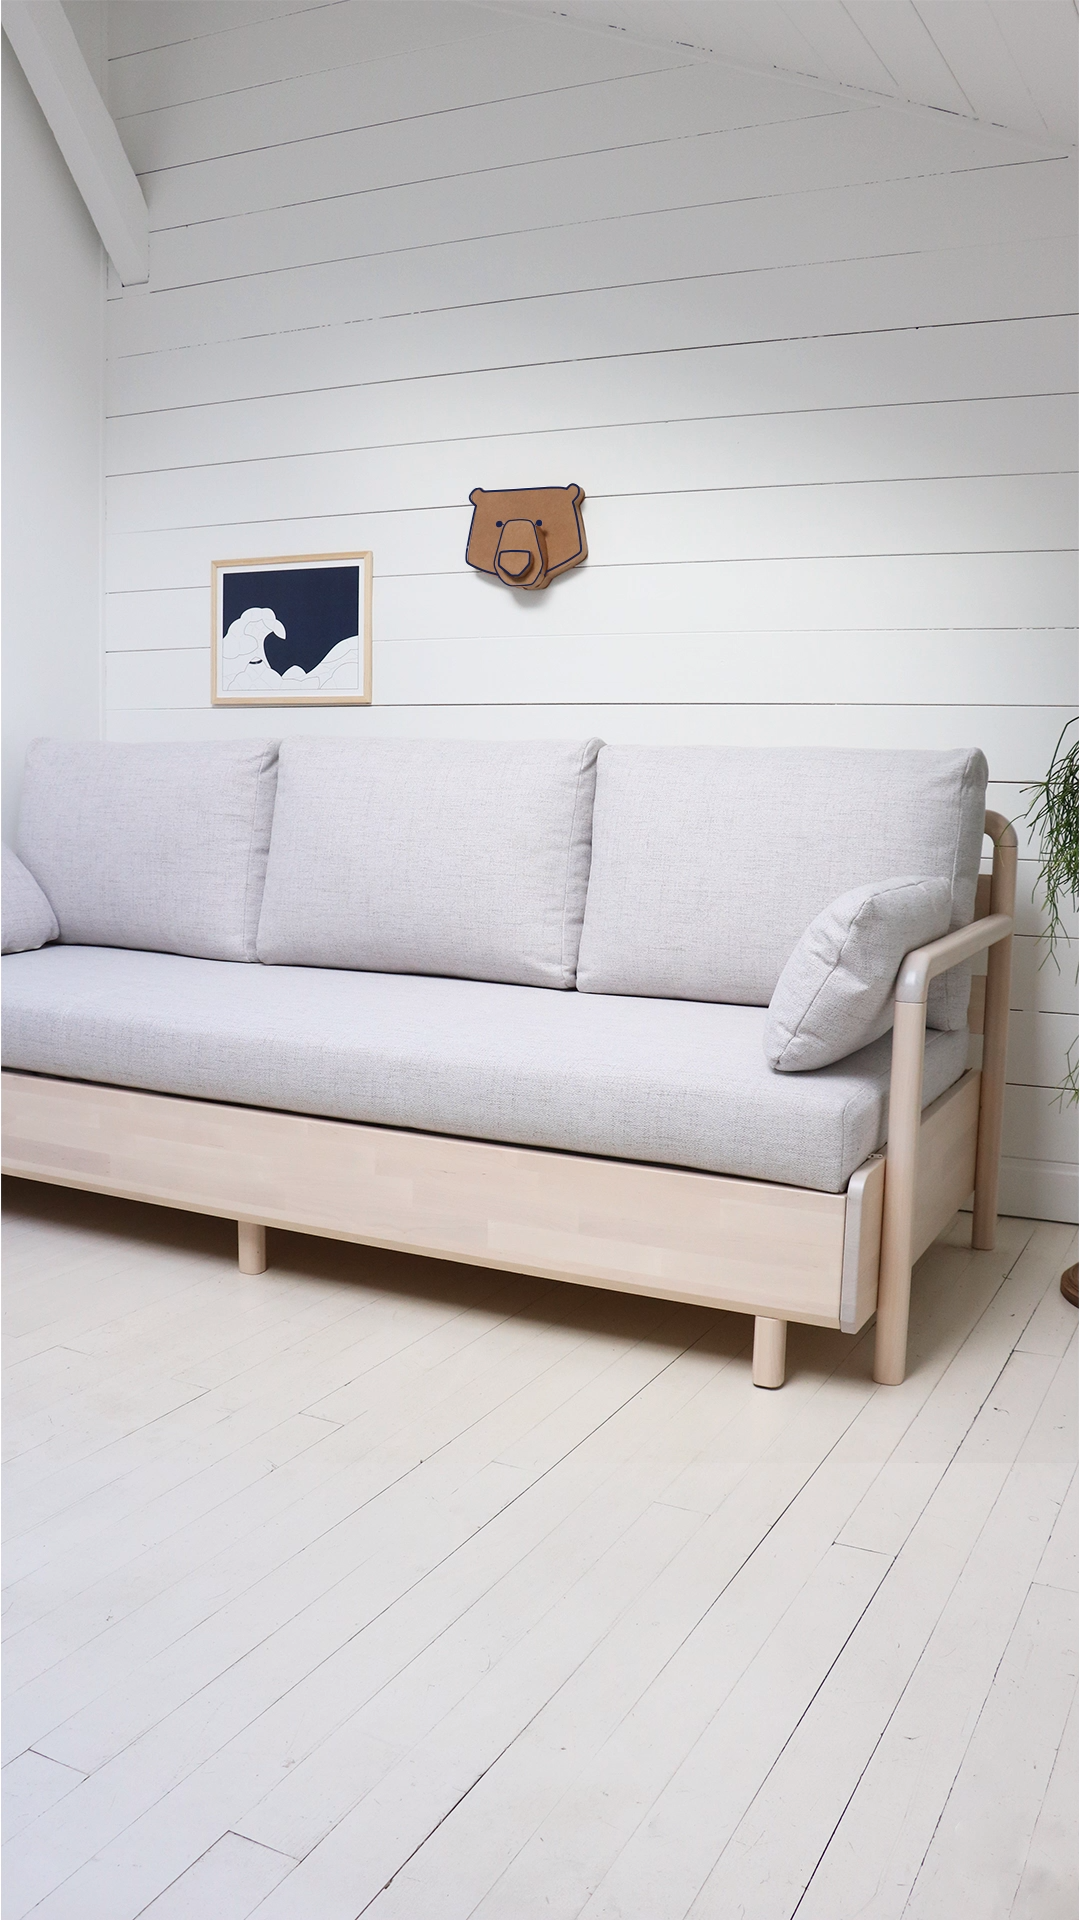 L Incroyable Systeme De Notre Canape Lit Boysbedroom Canape Canapelit Incroyable Li In 2020 Sofas For Small Spaces Sofa Bed Design Sofa Bed For Small Spaces